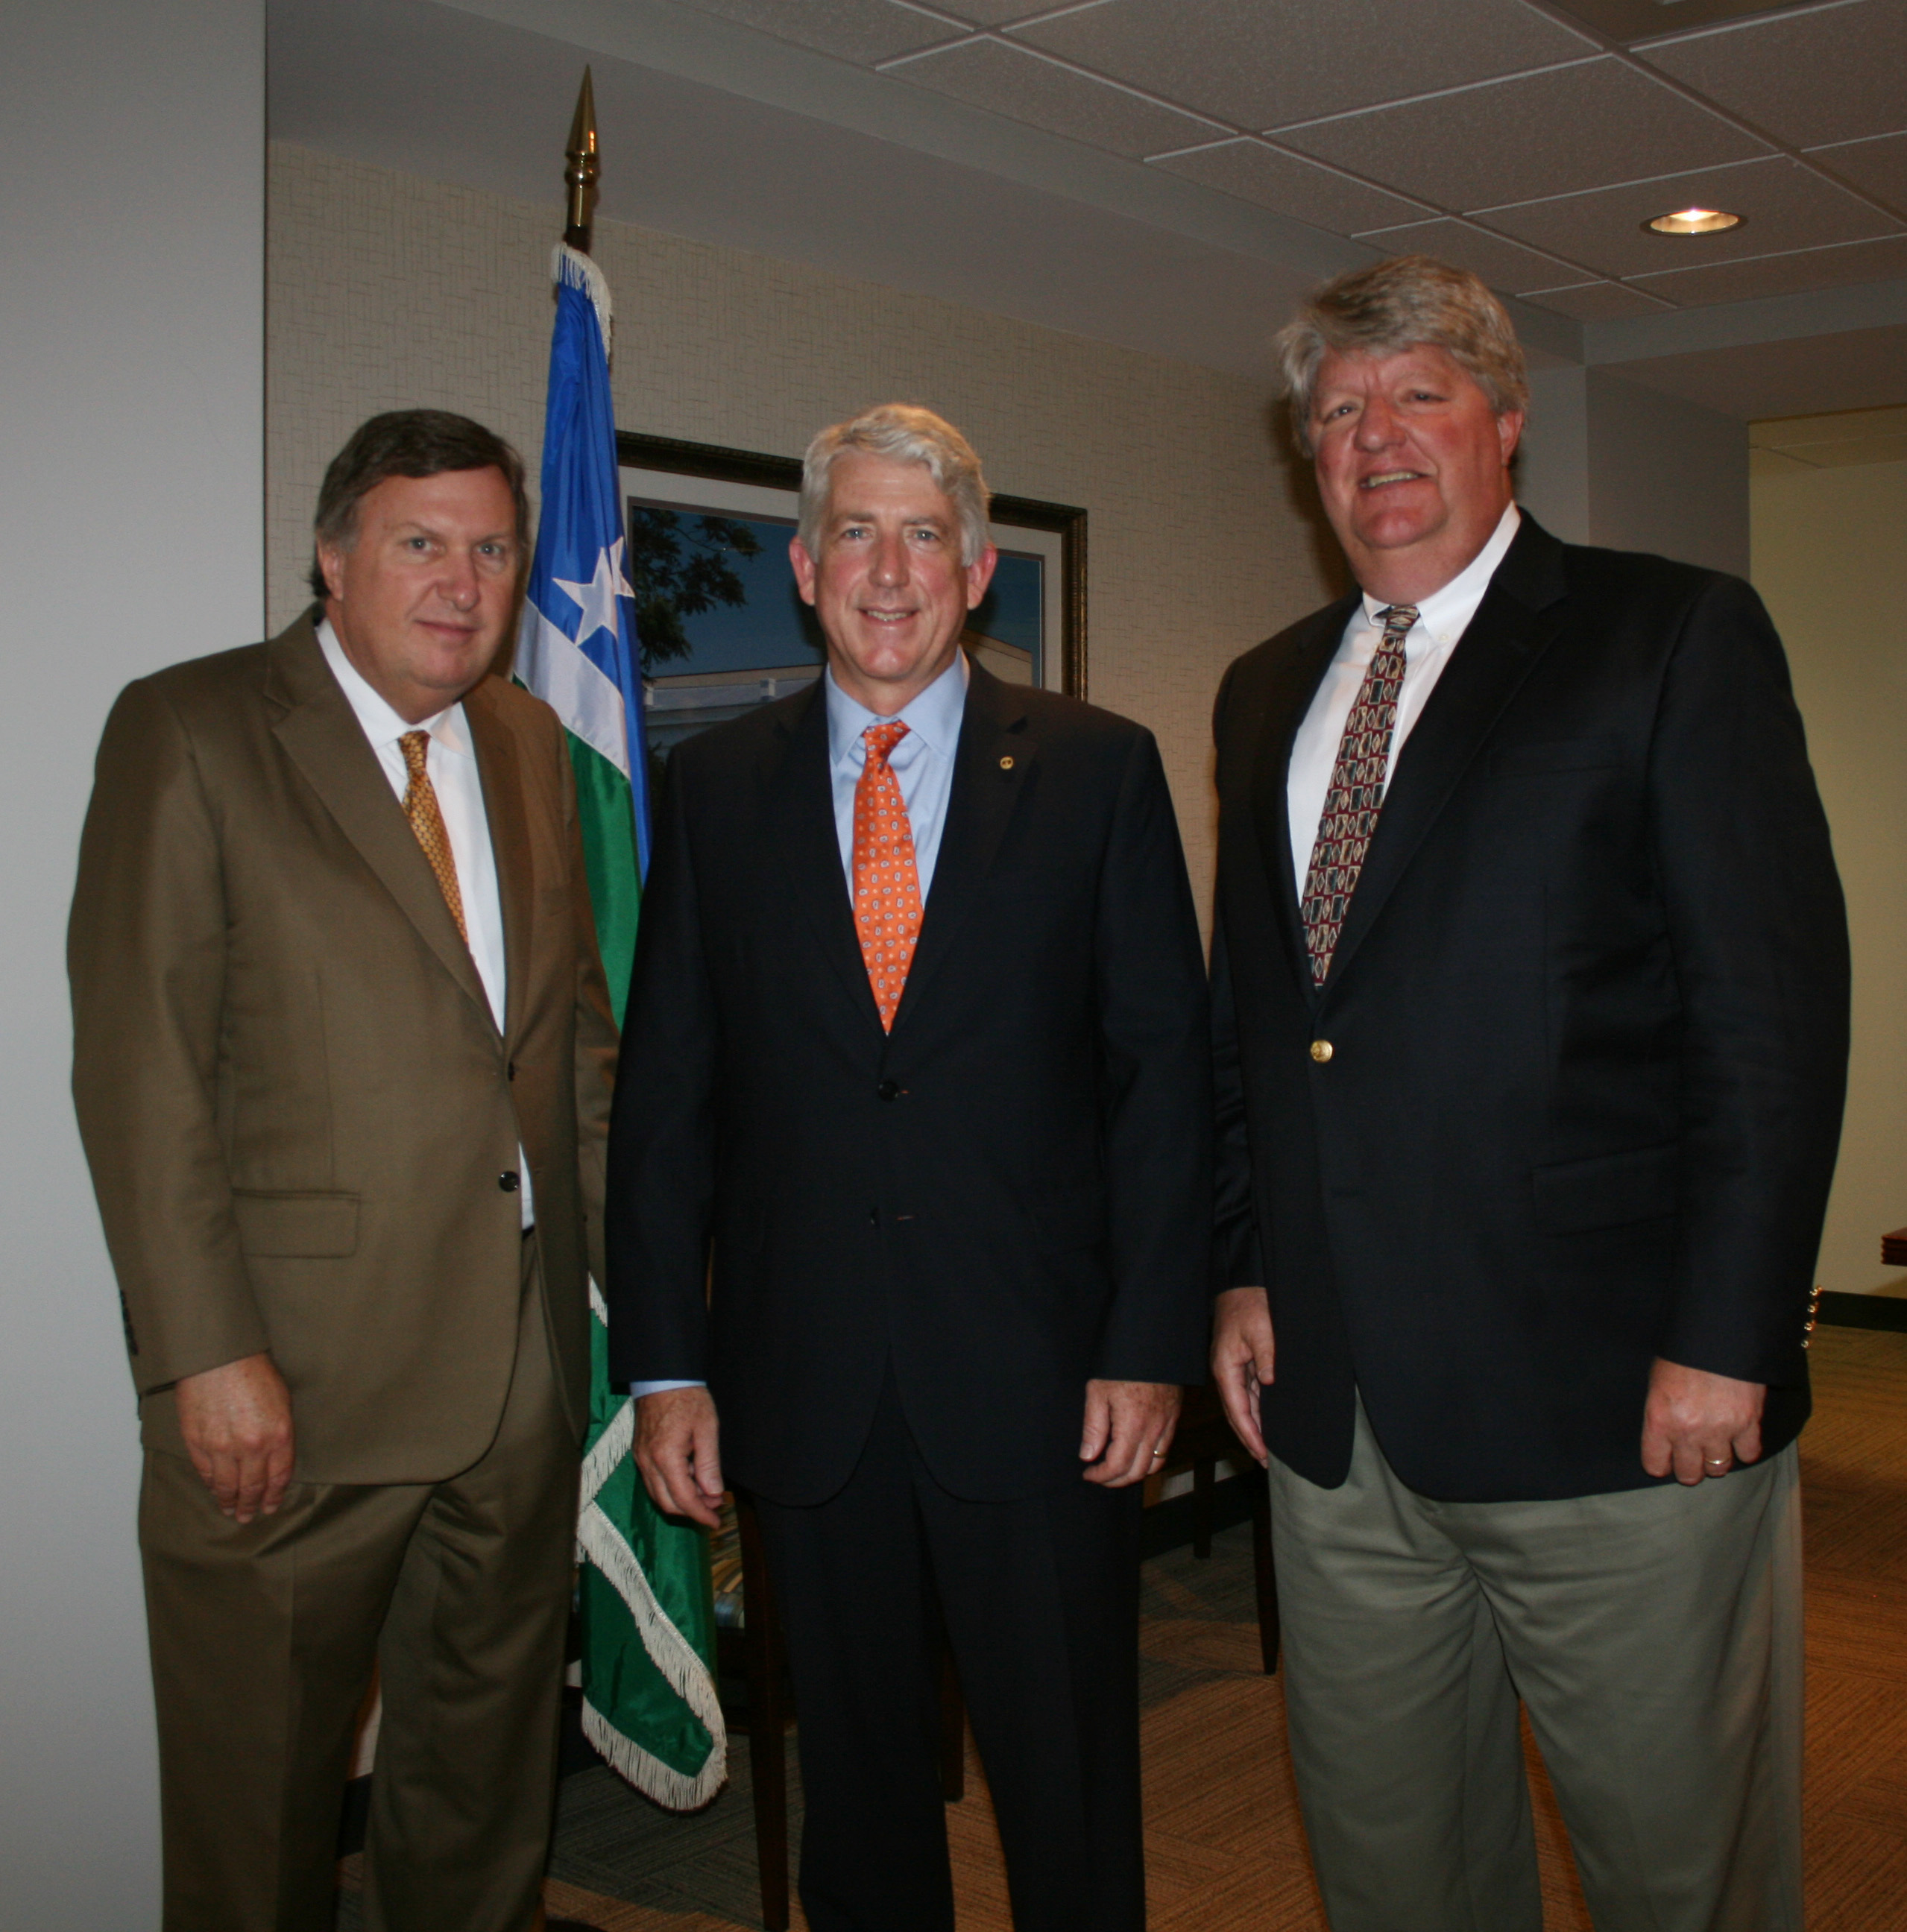 (from left) Chamber Sr. Vice President of Governmental Affairs Ira Agricola; Senator Mark Herring; and Chair of the Chamber's HRBizPAC Shep Miller